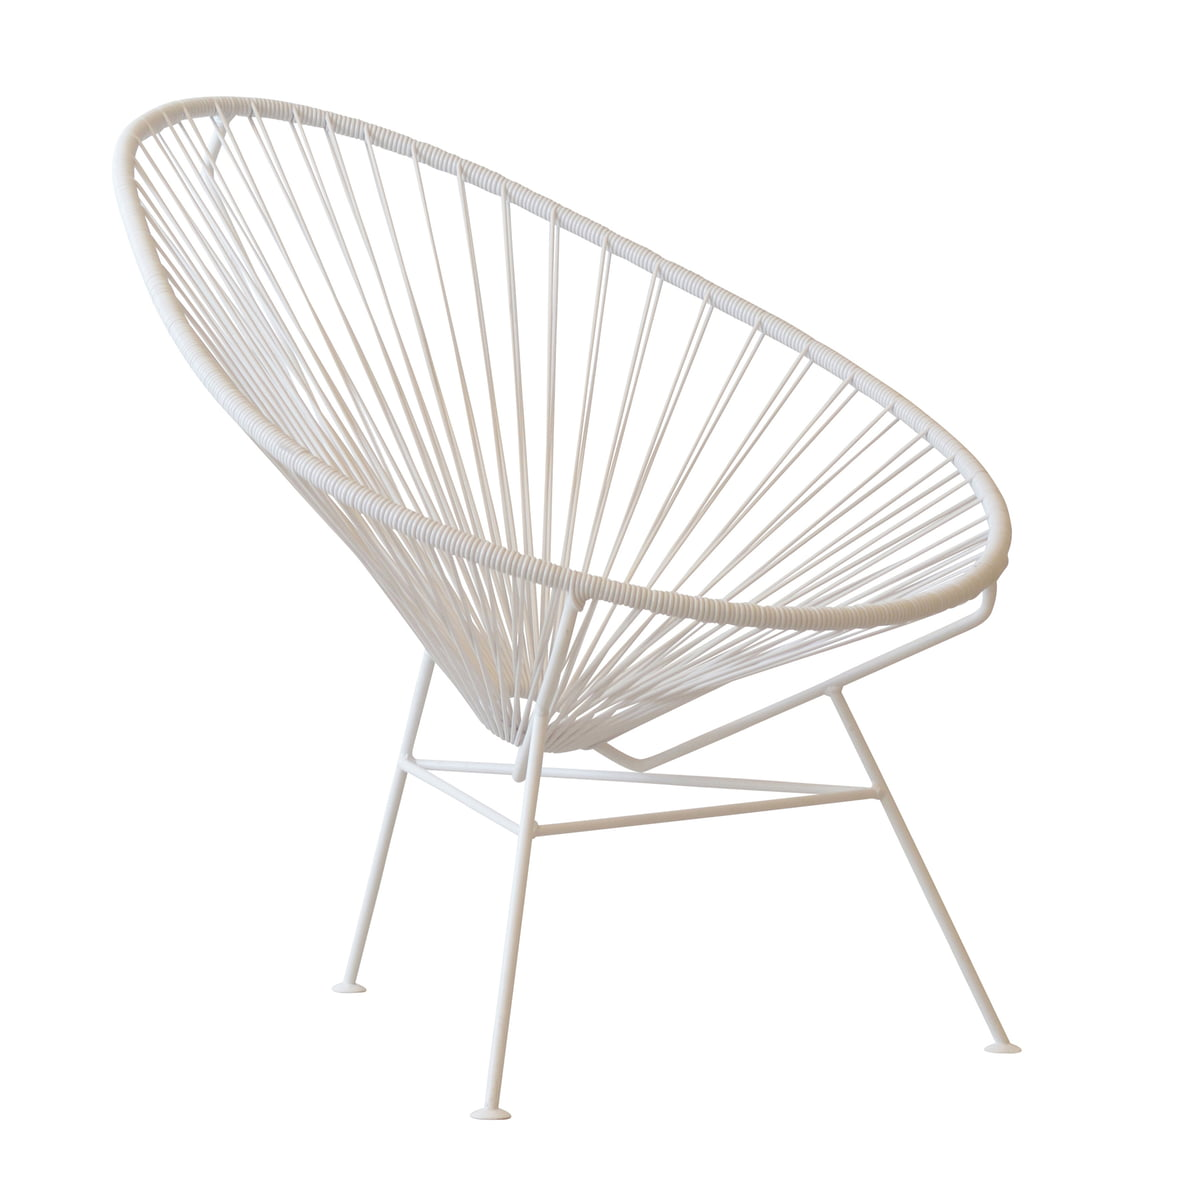 Acapulco all white von ok design im shop for Design im shop